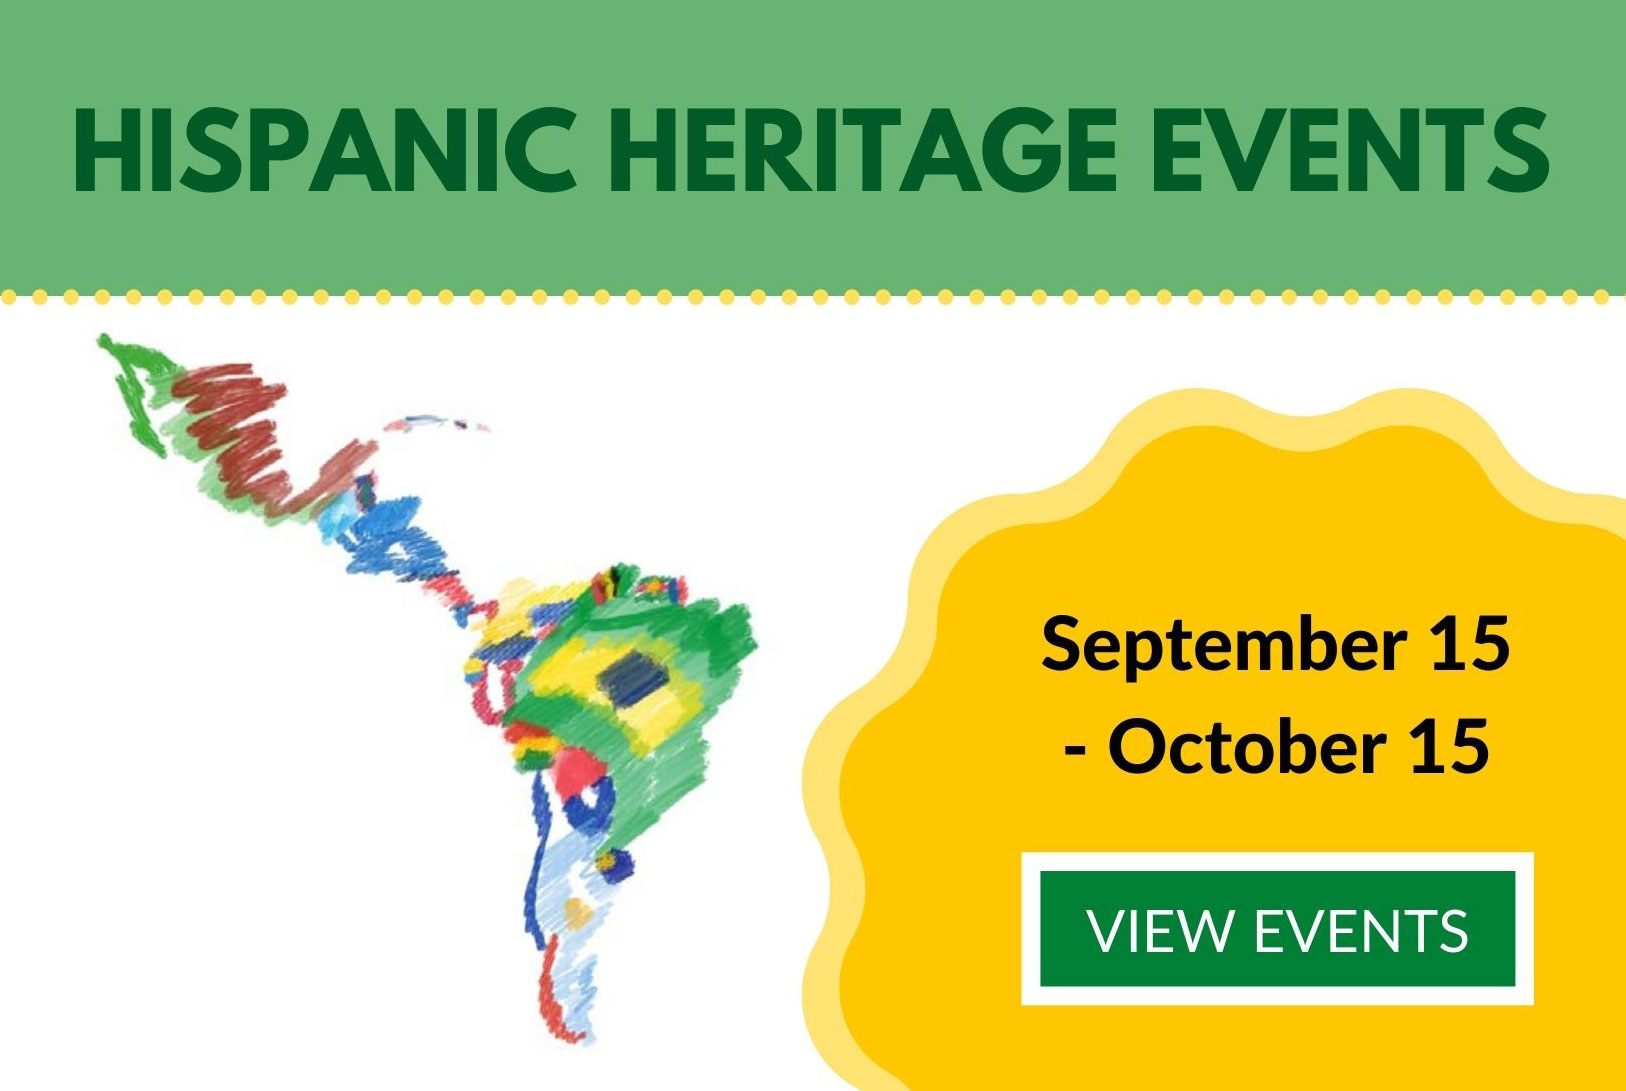 Hispanic Heritage Events September 15-October 15. View Events